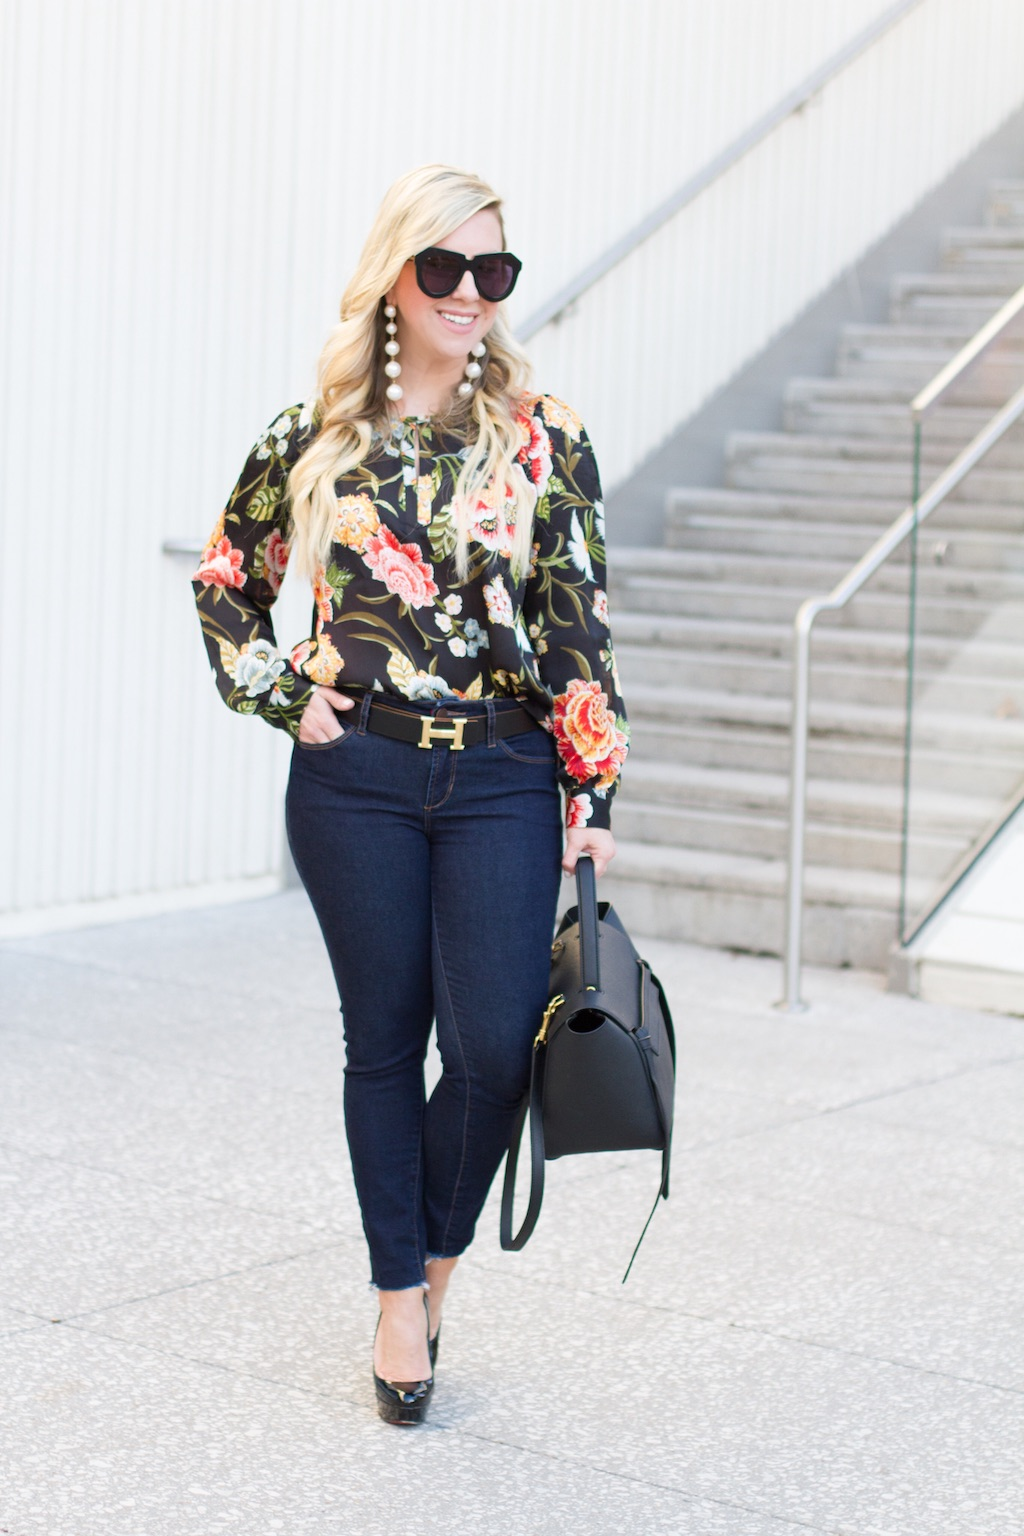 Floral Poppy Bloom Blouse   The Darling Petite Diva